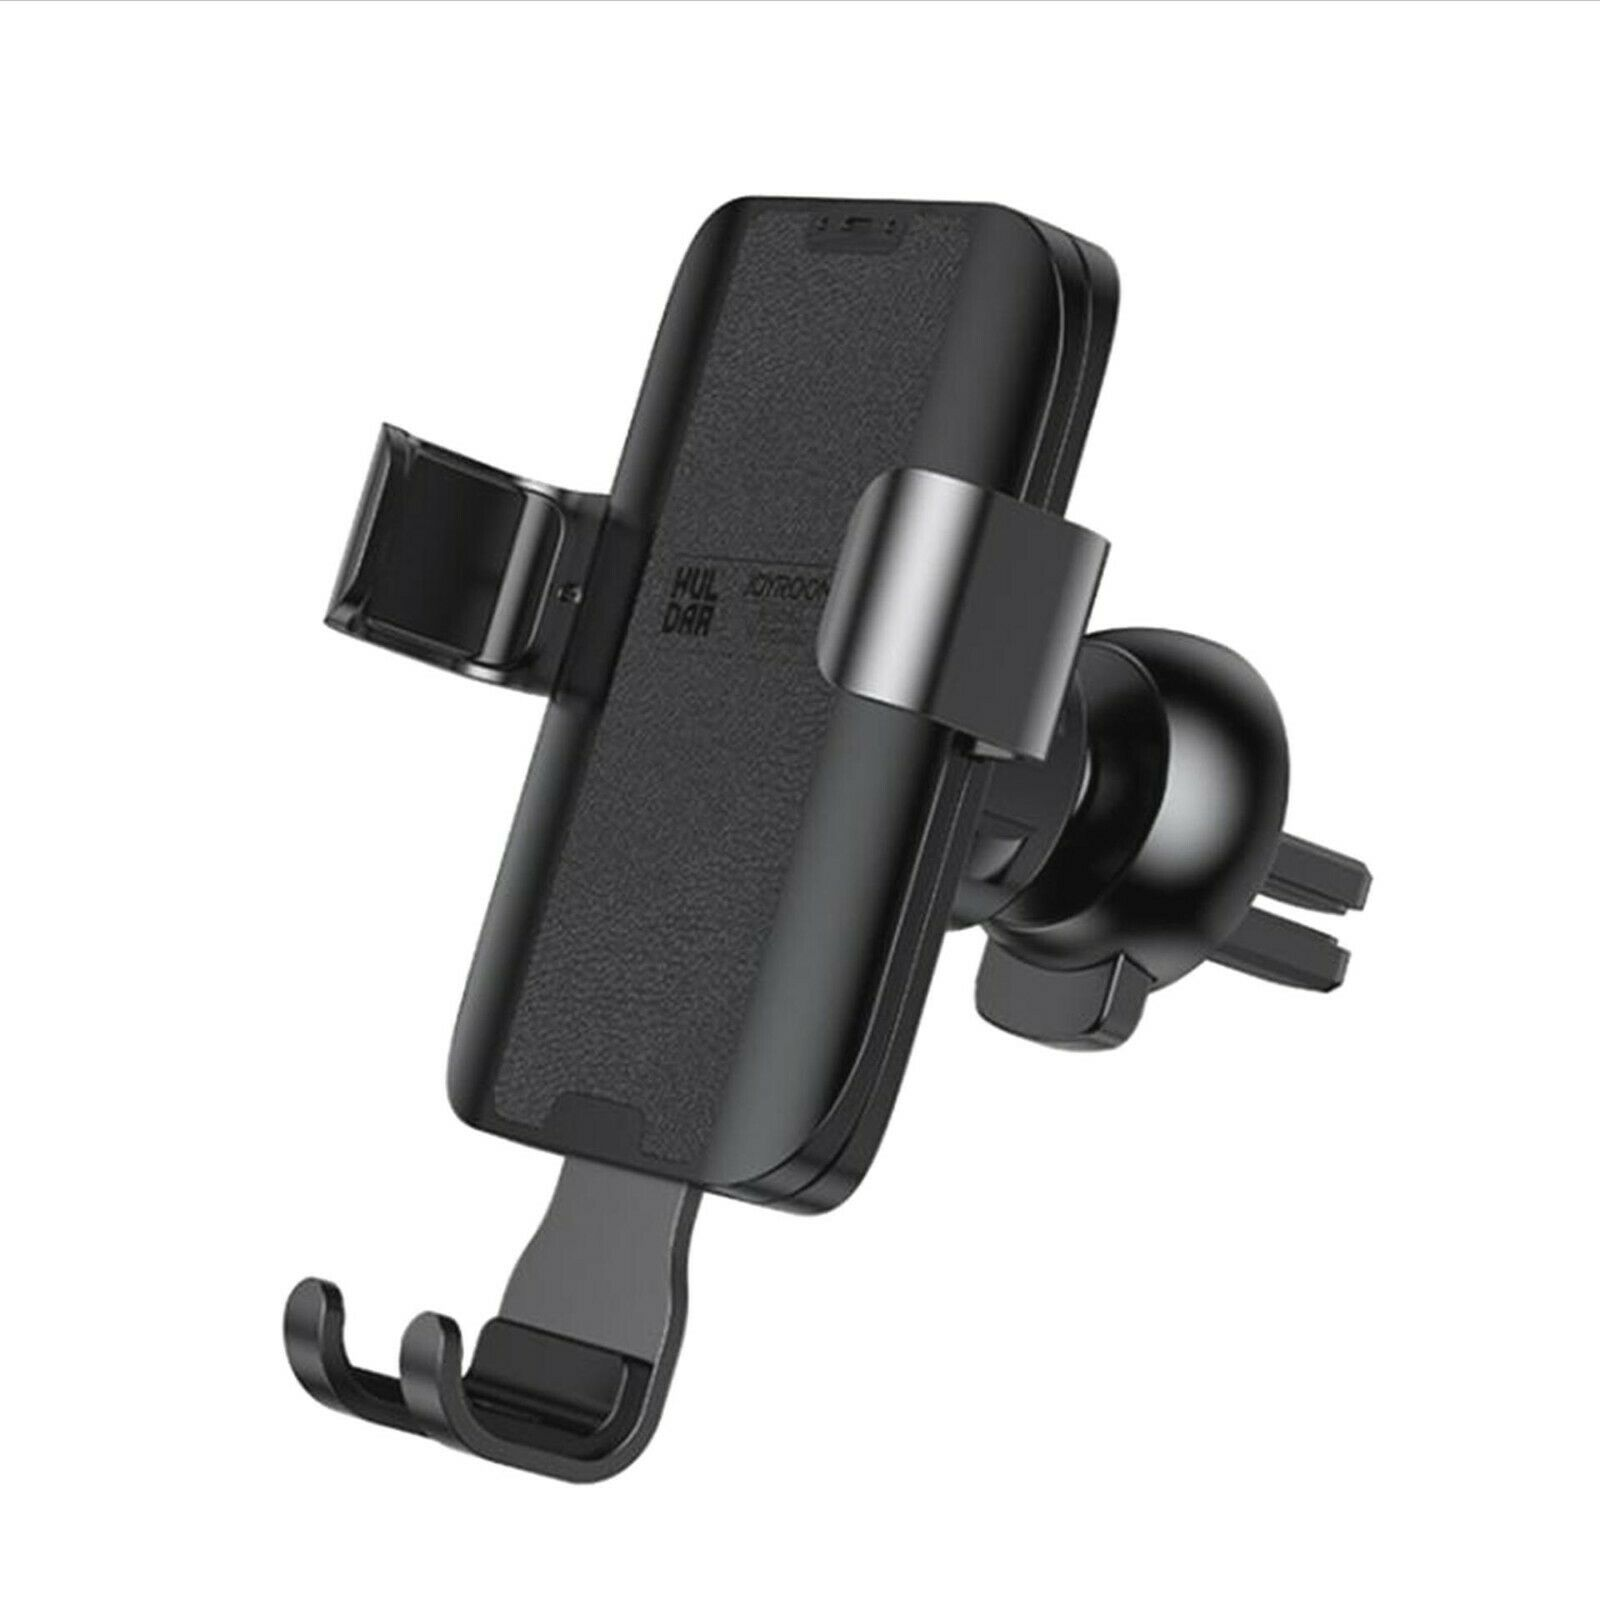 HITA Wireless Car Charger-Qi Fast Wireless Charging Car Mount Infrared Motion Sensor Wireless Car Charger Air Vent Phone Holder for iPhone X 8//8 Plus Samsung Galaxy S8//S9